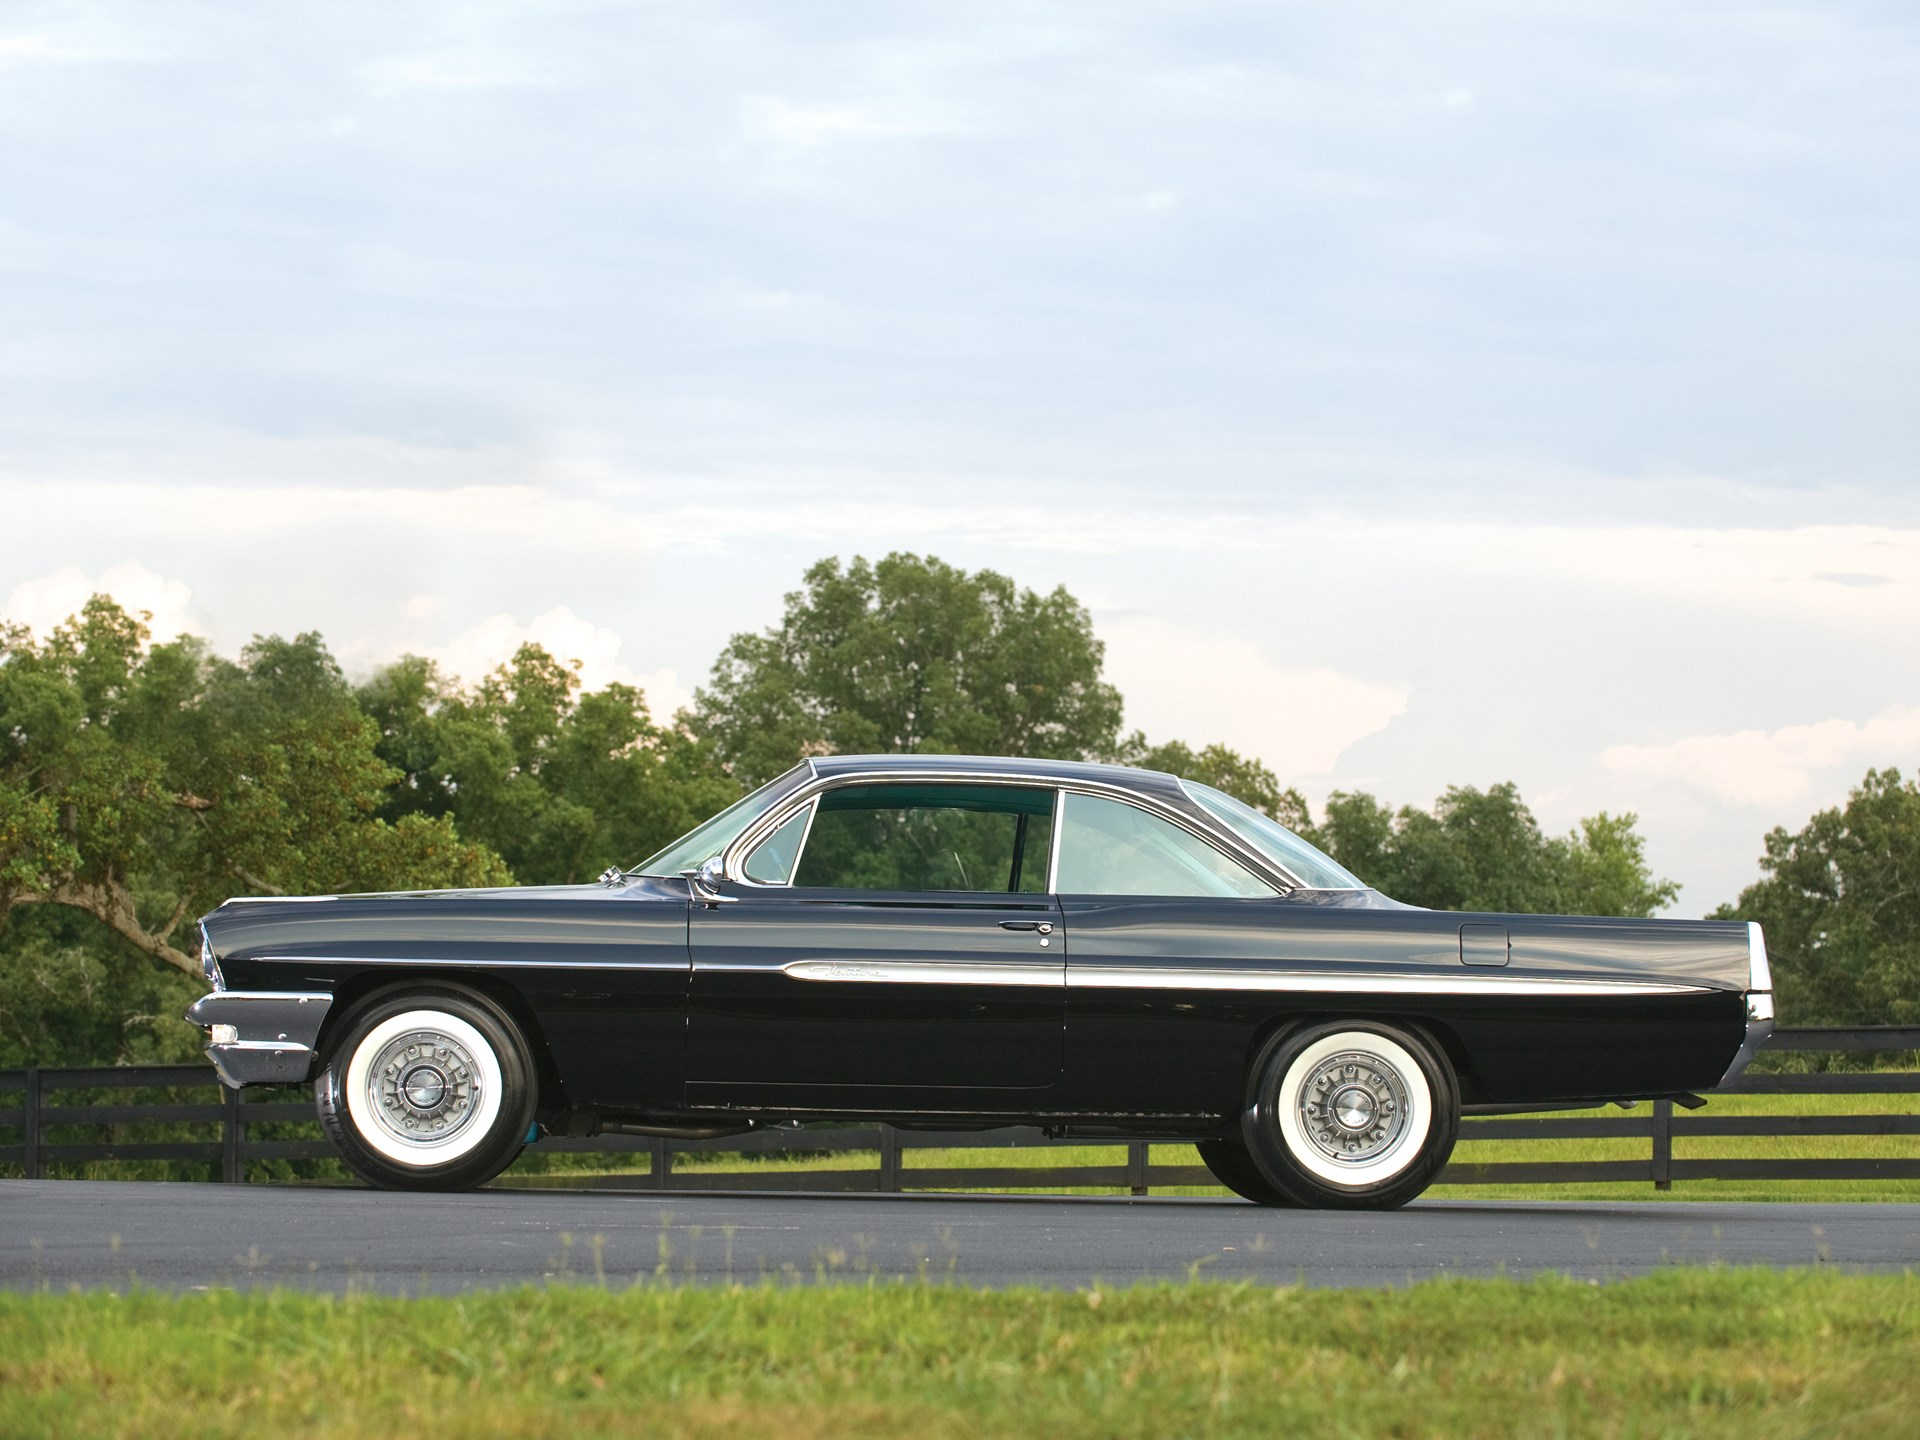 rm sotheby 39 s 1961 pontiac ventura super duty 421 hardtop. Black Bedroom Furniture Sets. Home Design Ideas